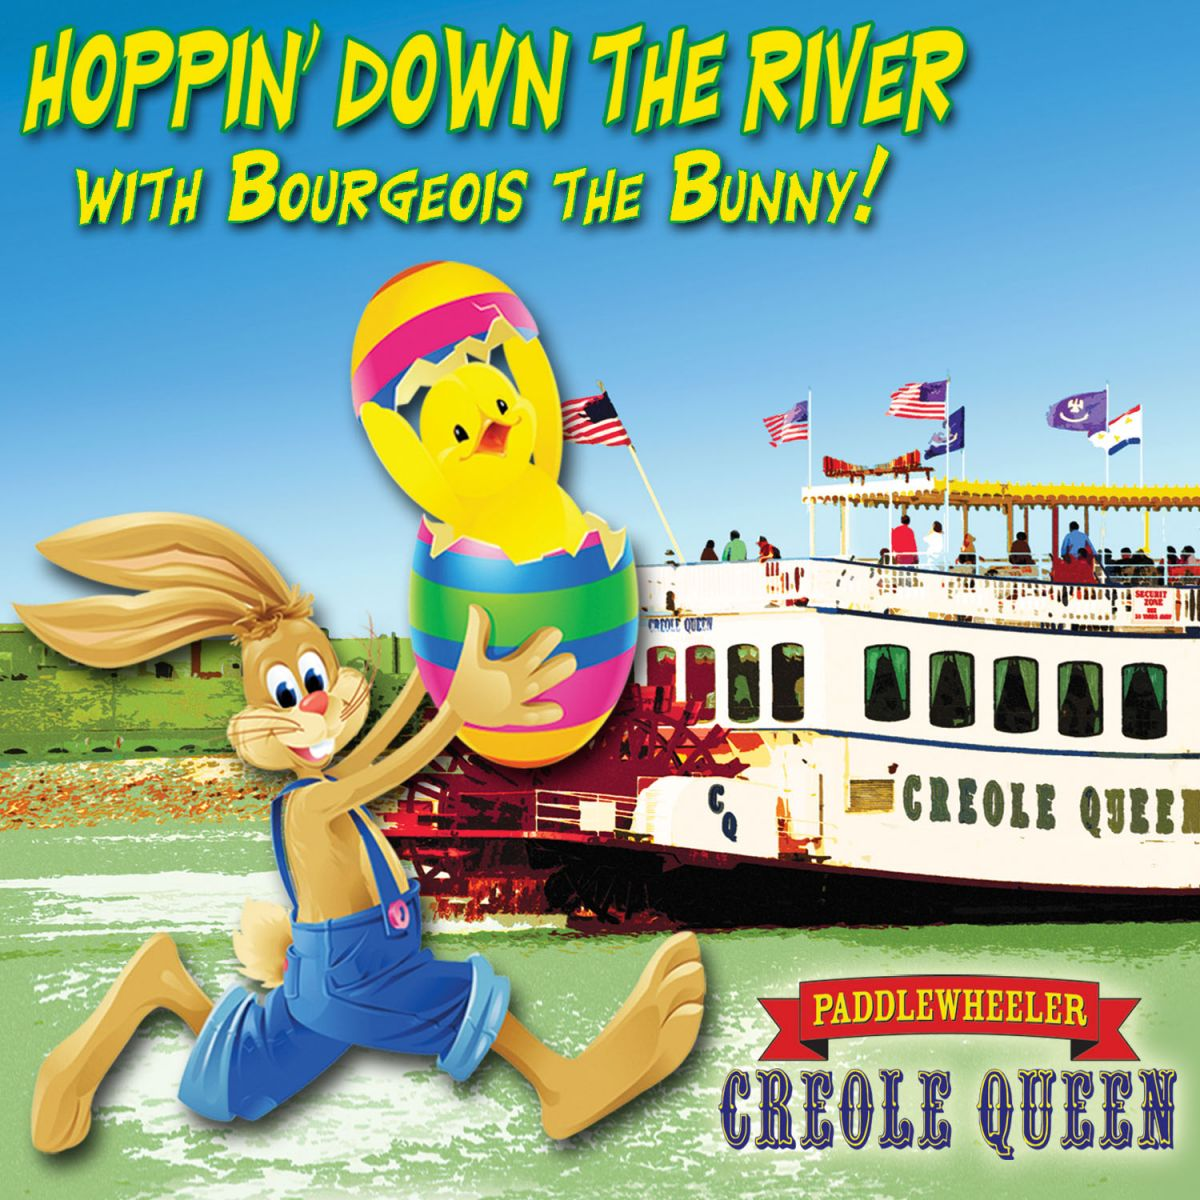 Hoppin' Down the River with the Bourgeois the Bunny